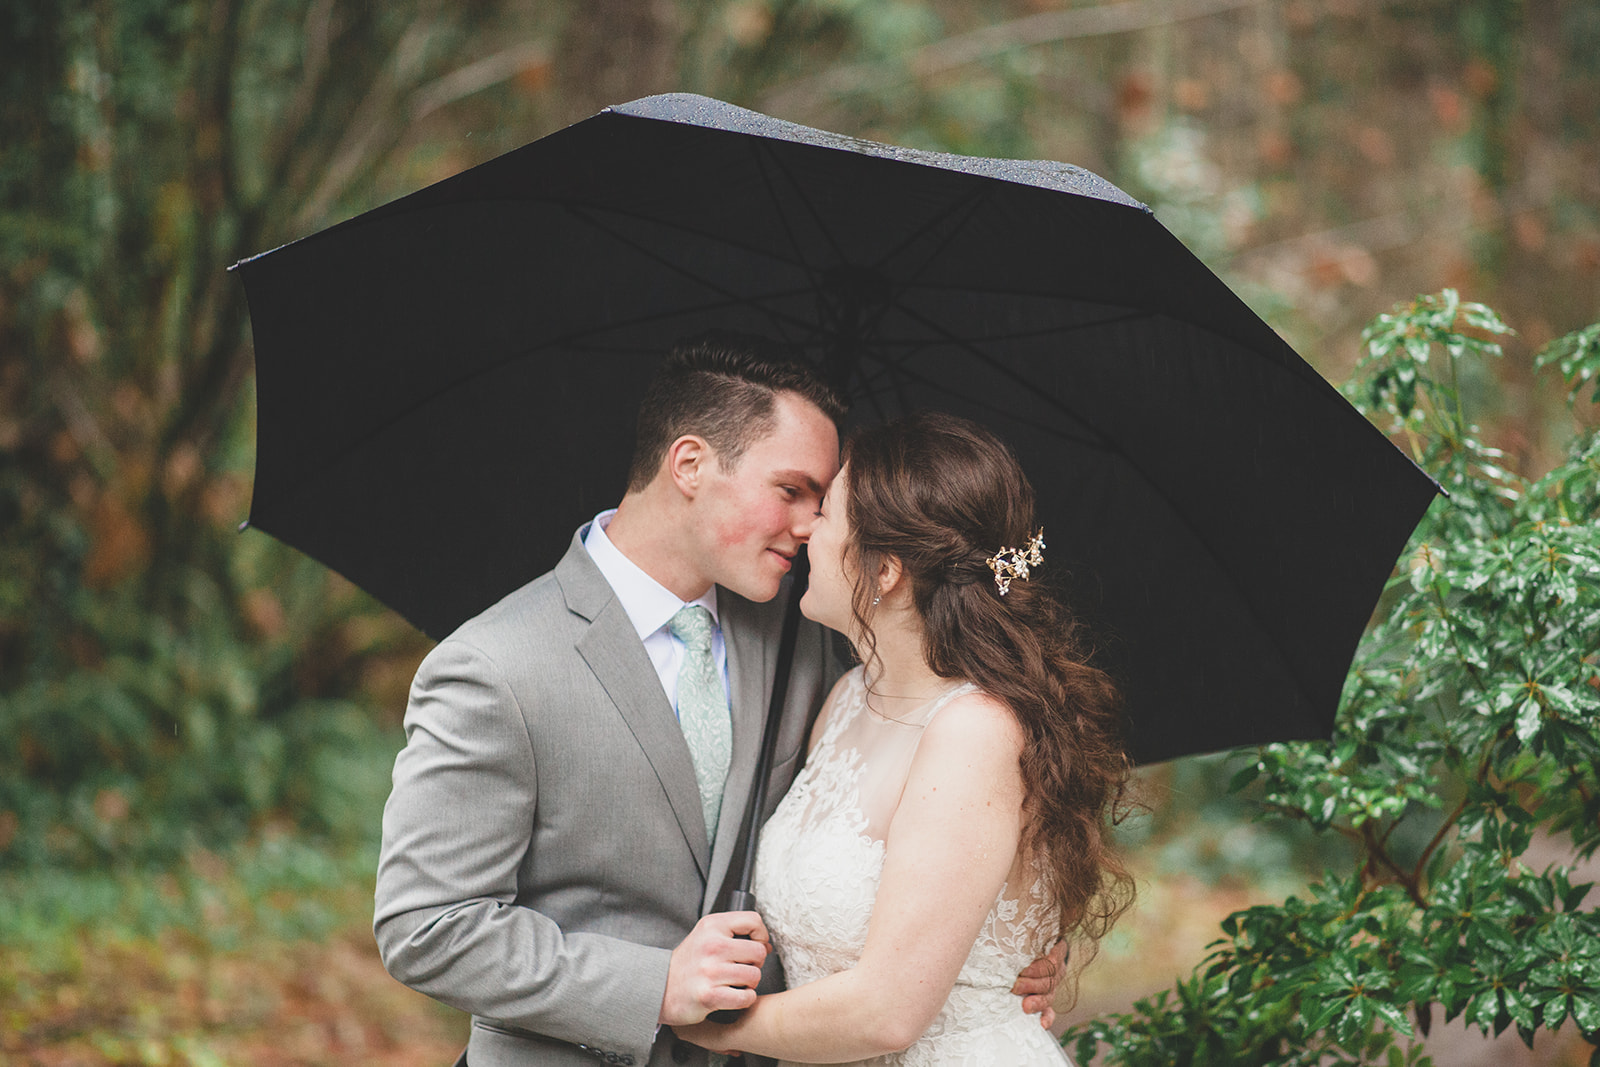 rainy spokane wedding bride groom